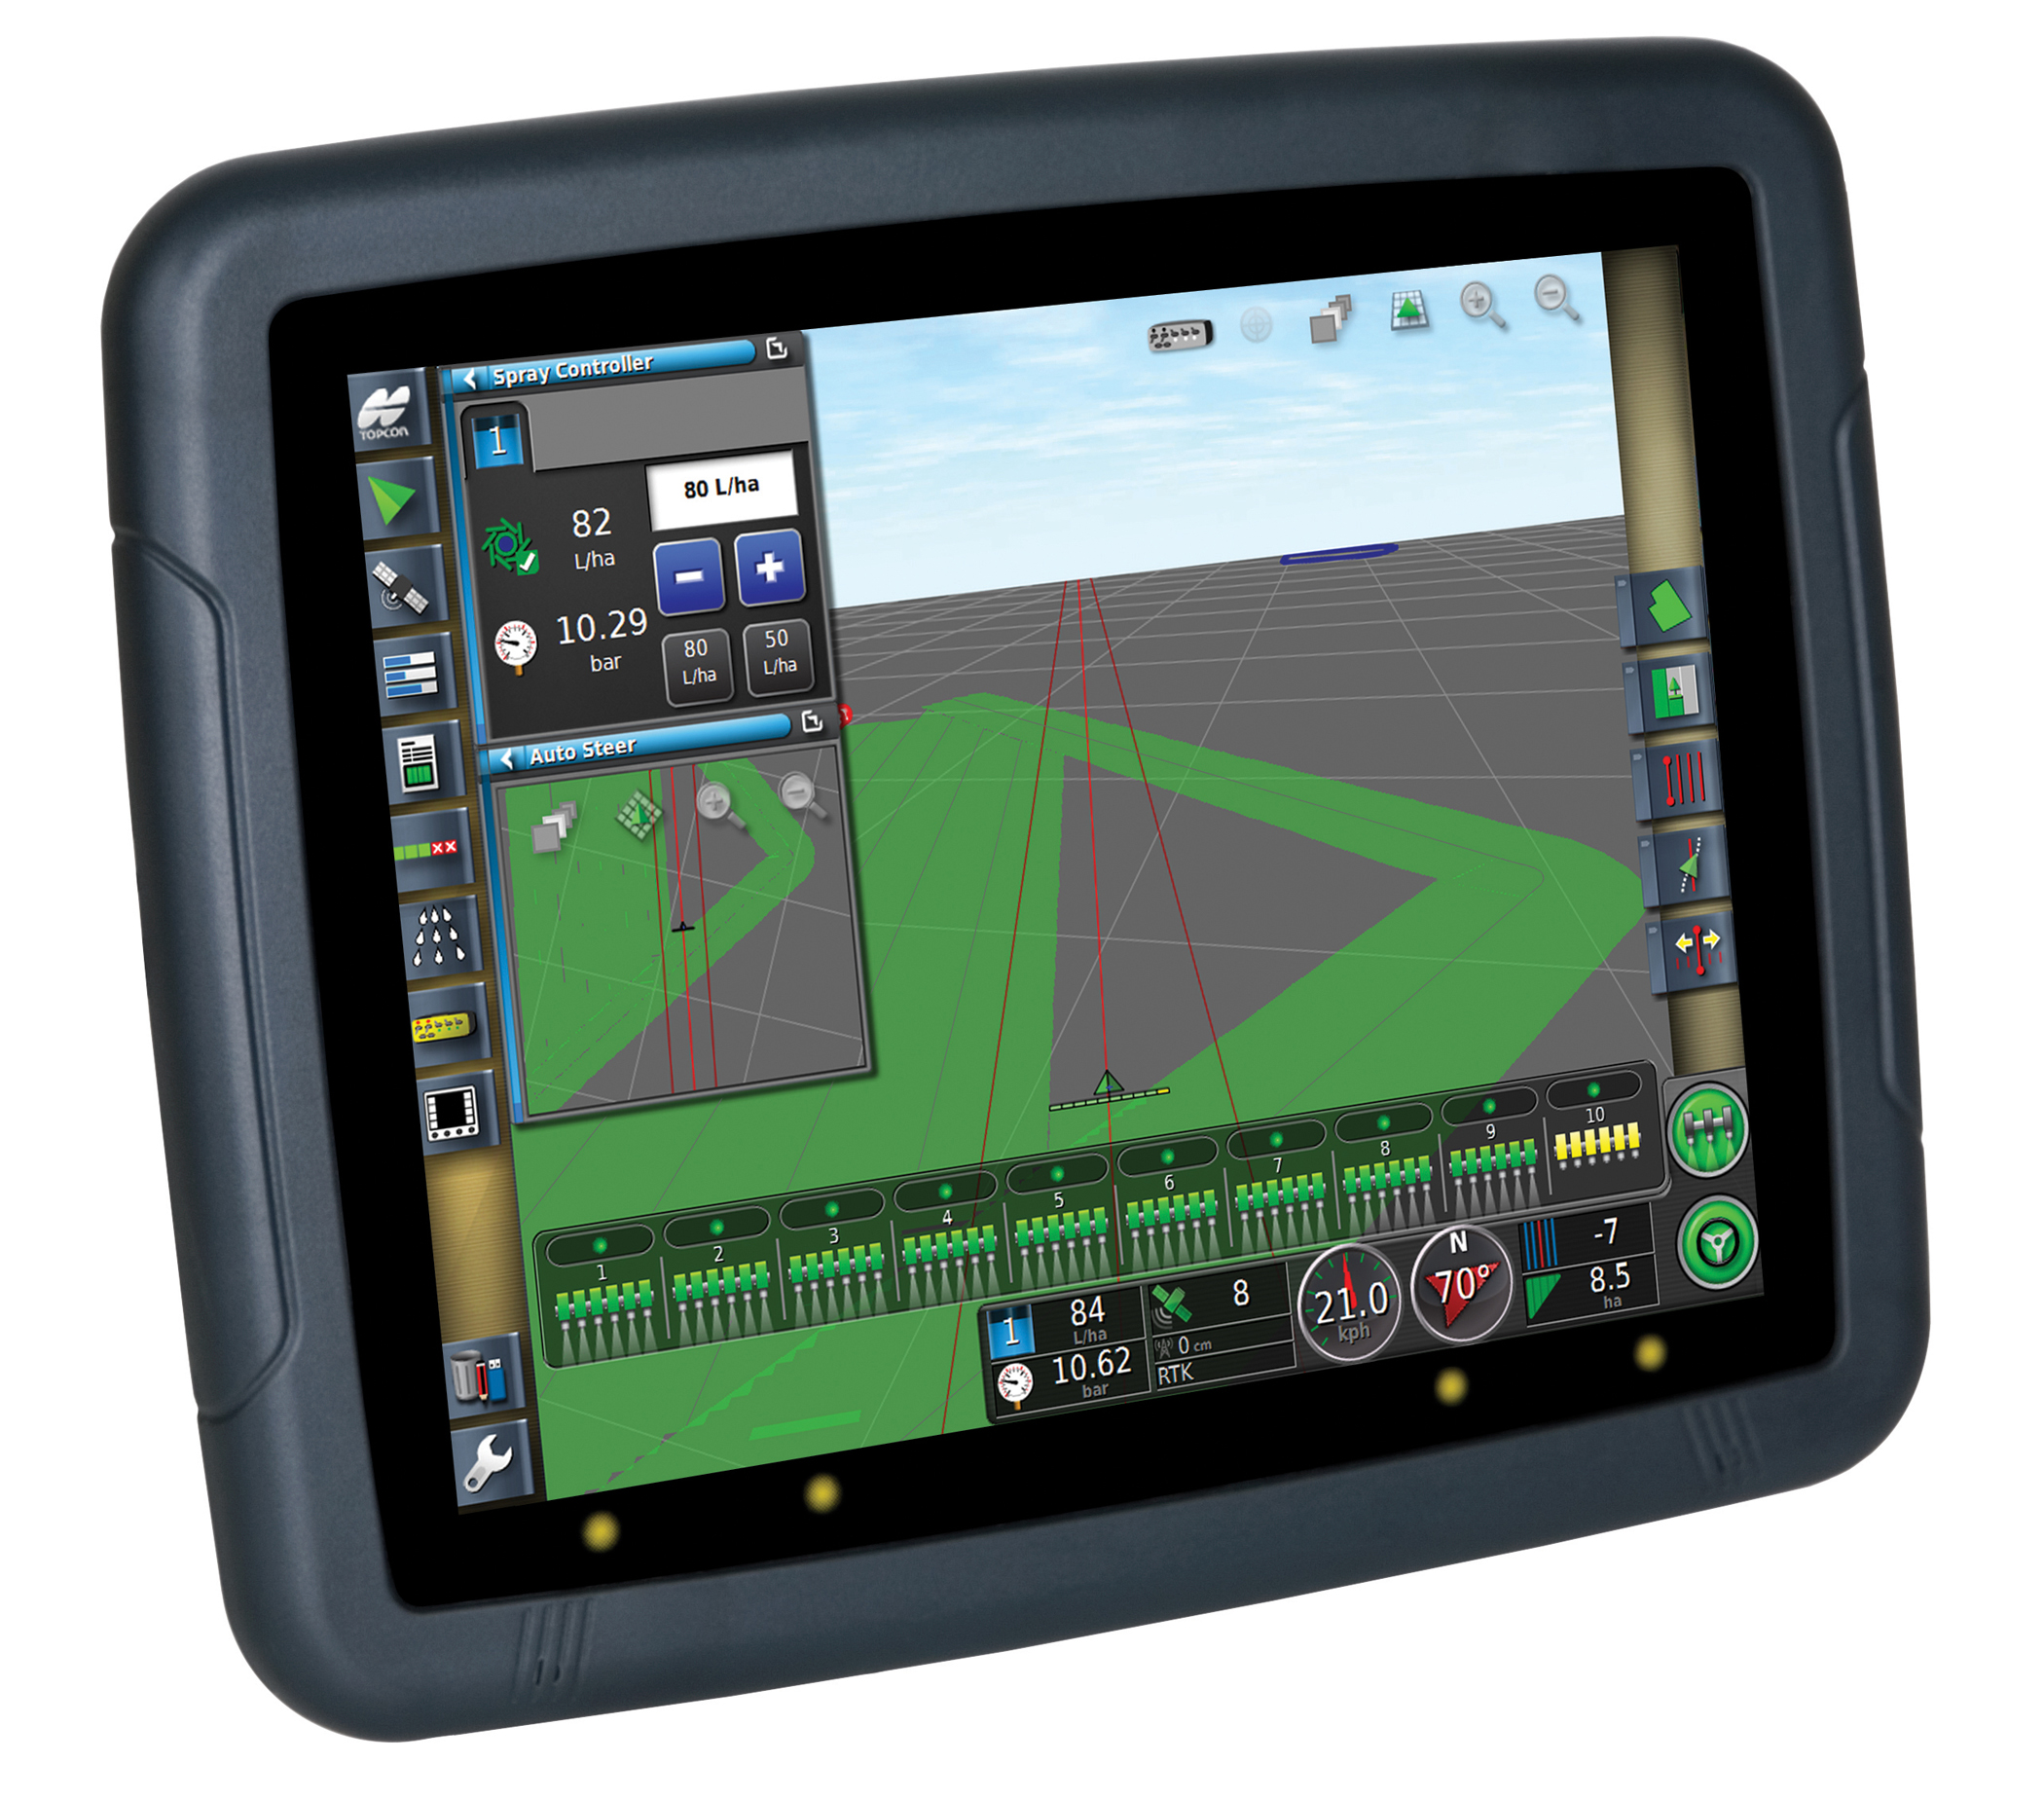 topcon system 350 rtk gps with base station machinery. Black Bedroom Furniture Sets. Home Design Ideas